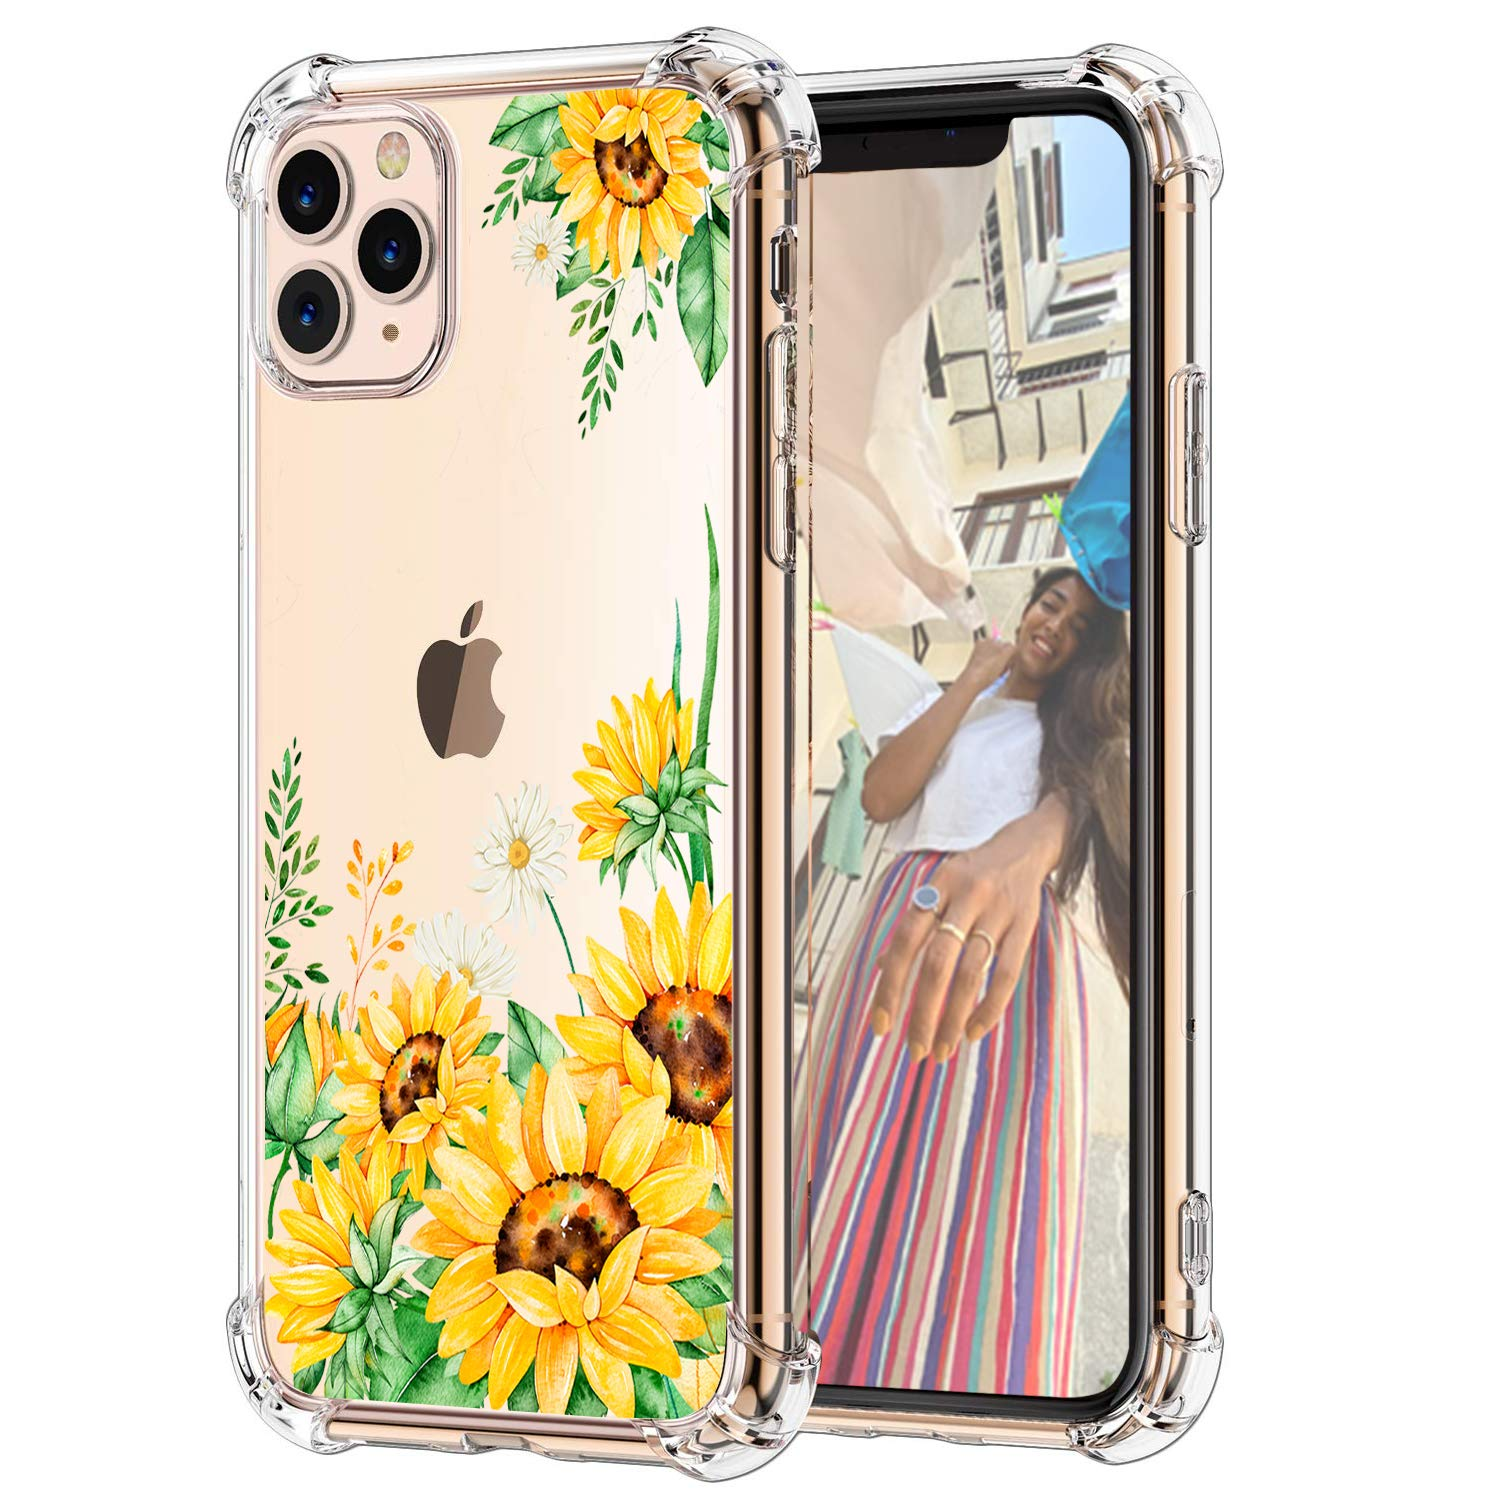 Hepix Sunflowers iPhone 11 Pro Cases Flowers Clear 11 Pro Cases, Flexible Soft TPU Protective Phone Cover with 4 Cushion Corners Shock Absorbing Anti-Scratch Raised Bezel Protetction